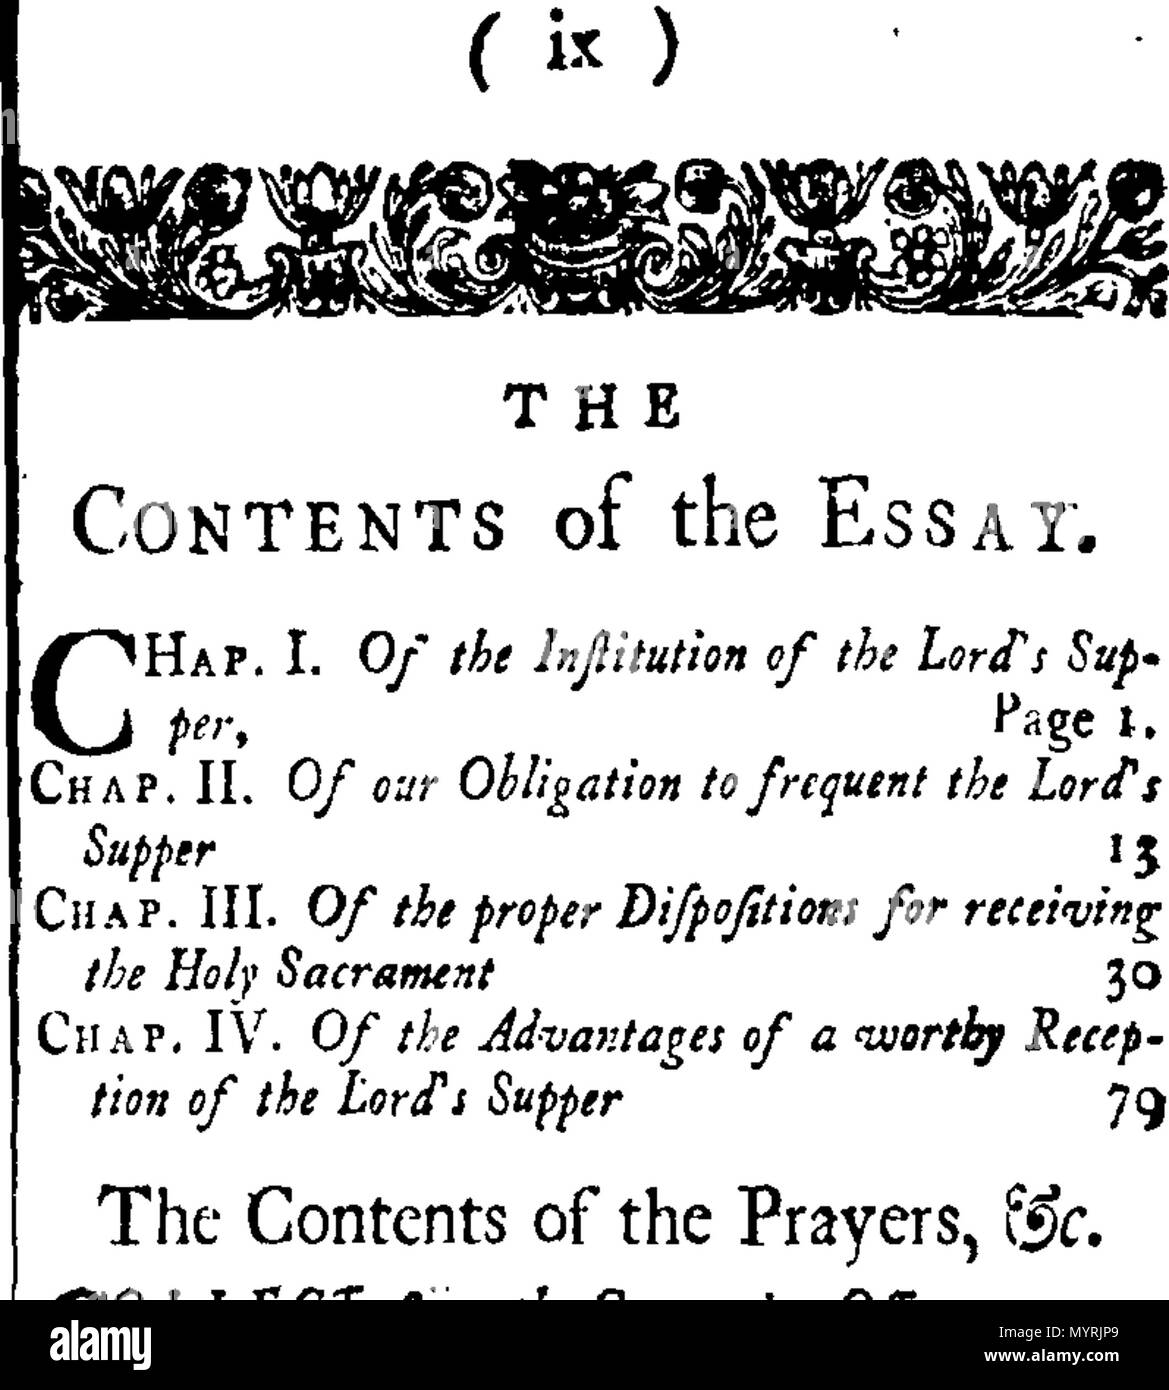 english fleuron from book an essay on the lords supper wherein   english fleuron from book an essay on the lords supper wherein is  shewn the nature and end of that sacrament the obligation to frequent it